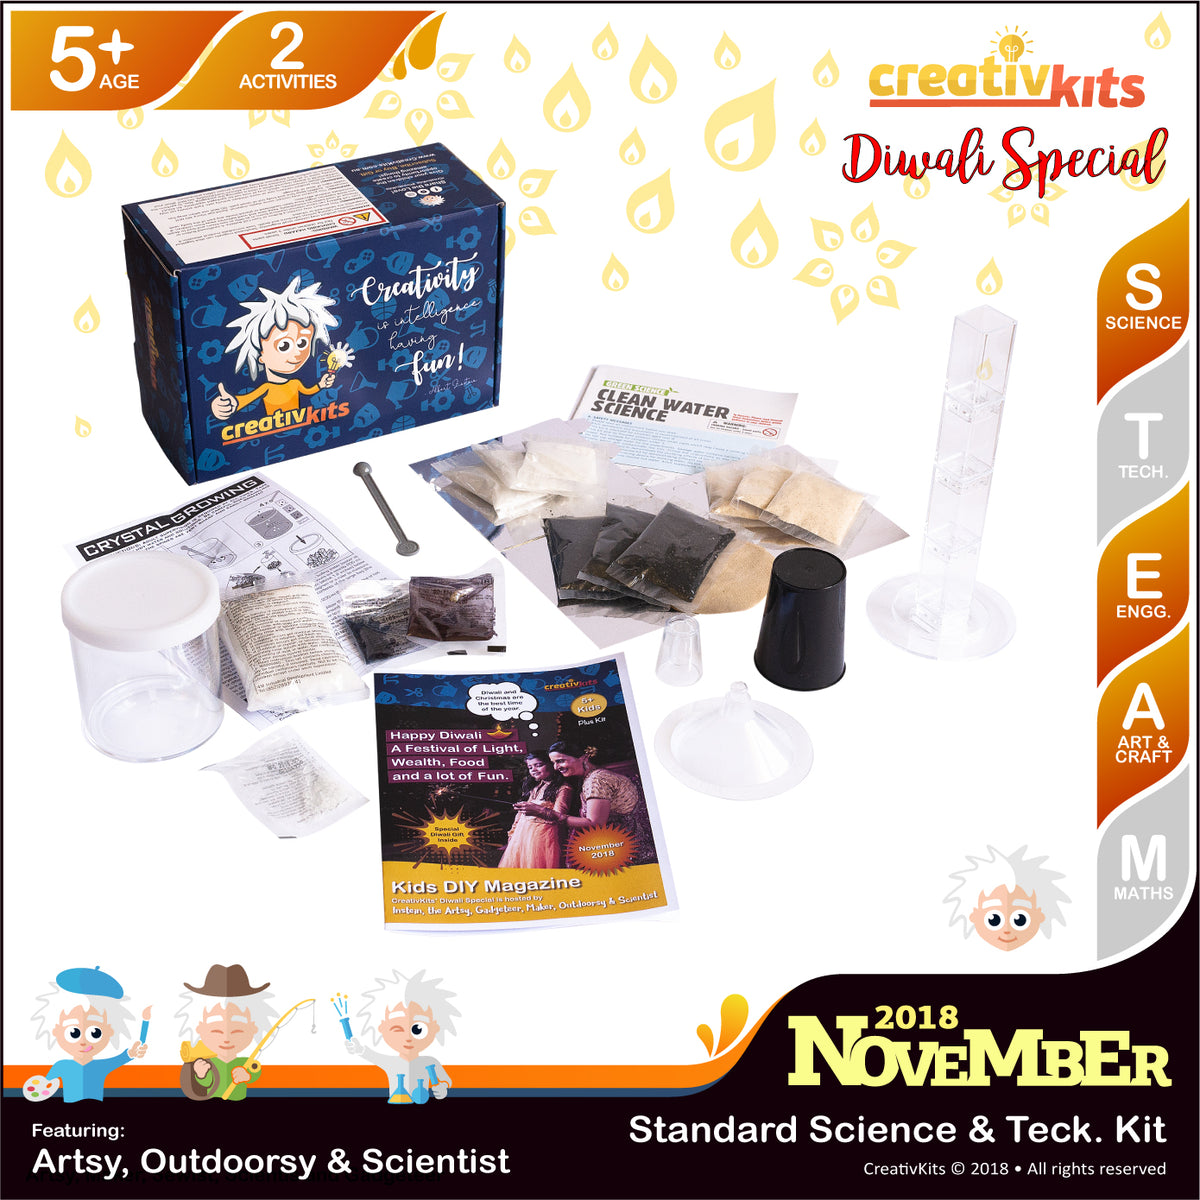 November Standard Science & Tech. Kit • Age 5 plus • DIY Water Filtration & Coloured Crystal Growing